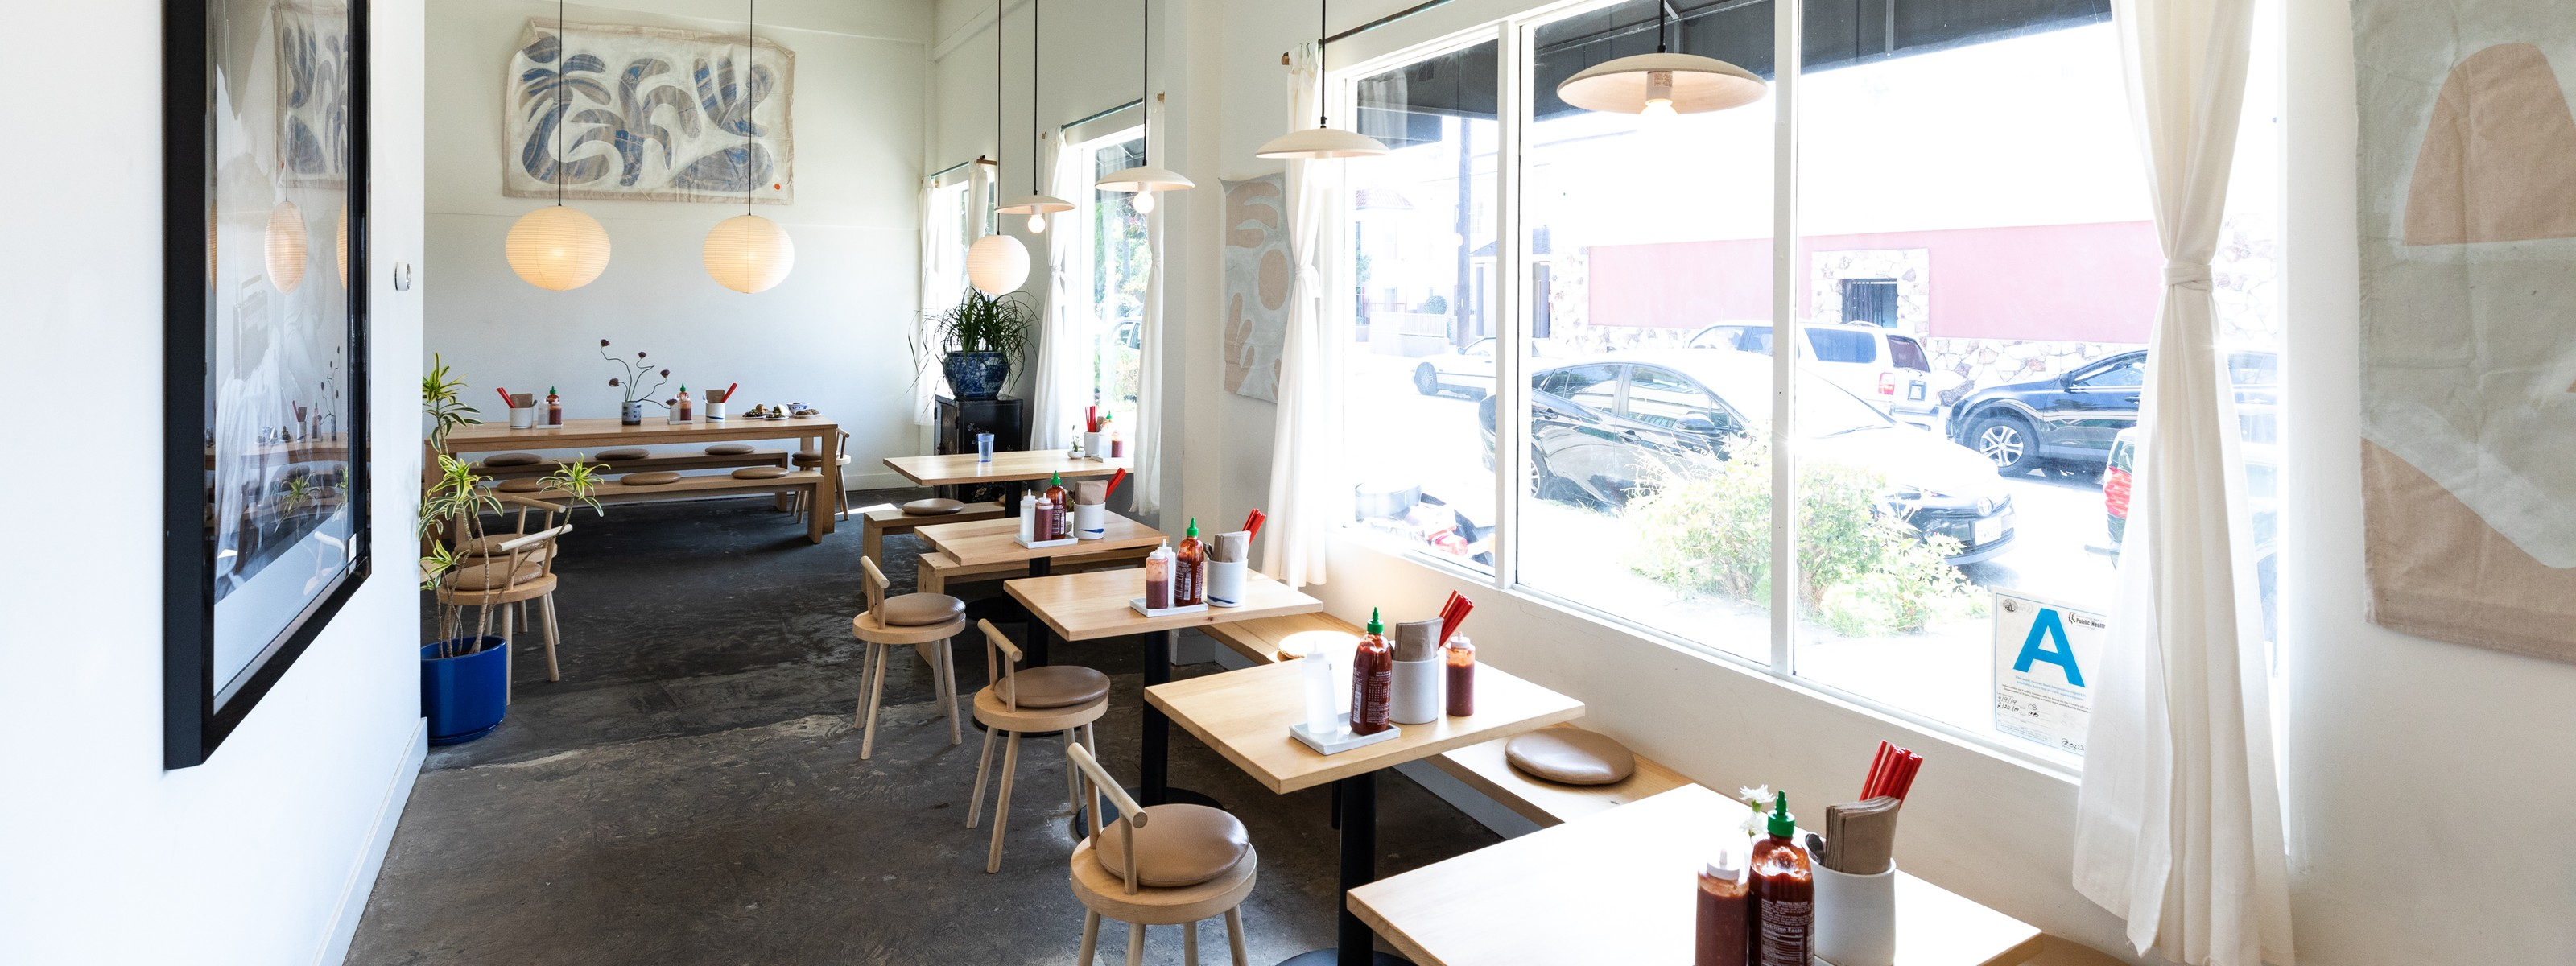 Where To Have An Affordable Date Night Los Angeles The